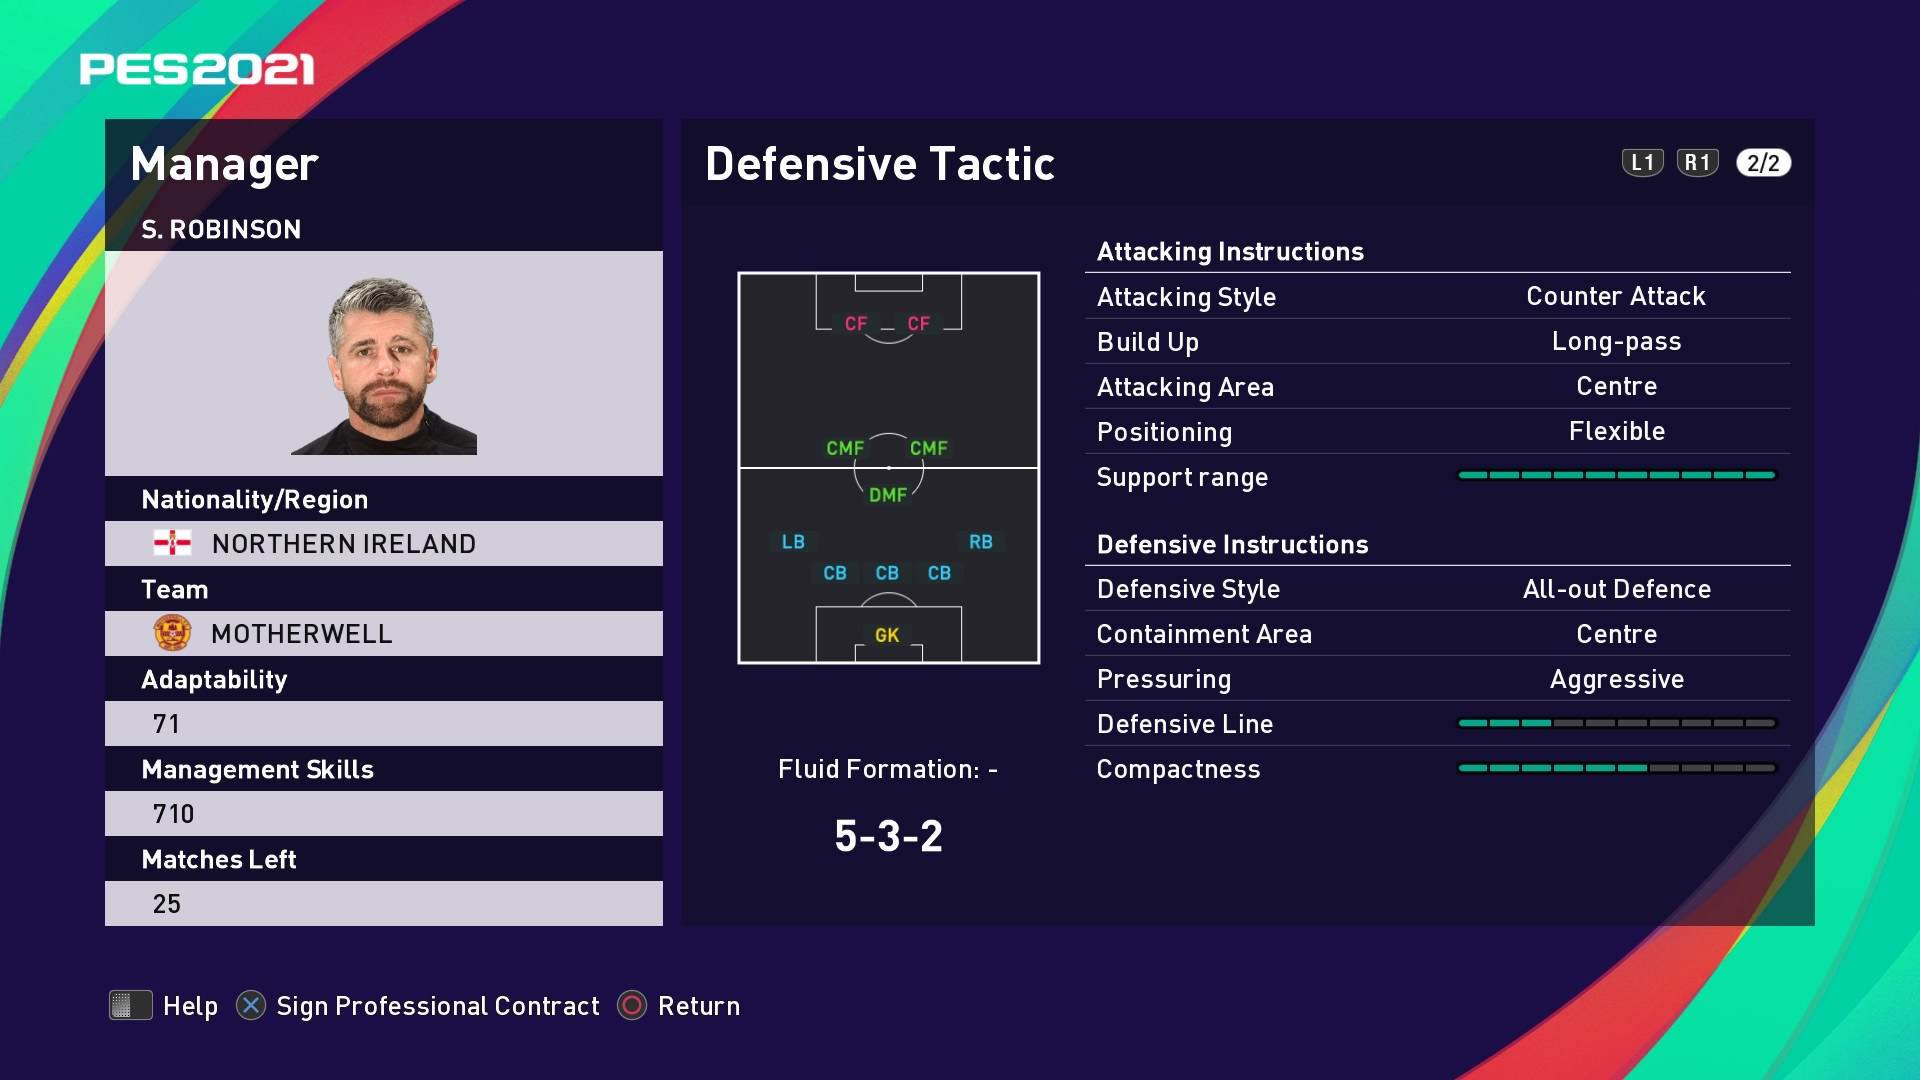 S. Robinson (Steve Robinson) Defensive Tactic in PES 2021 myClub